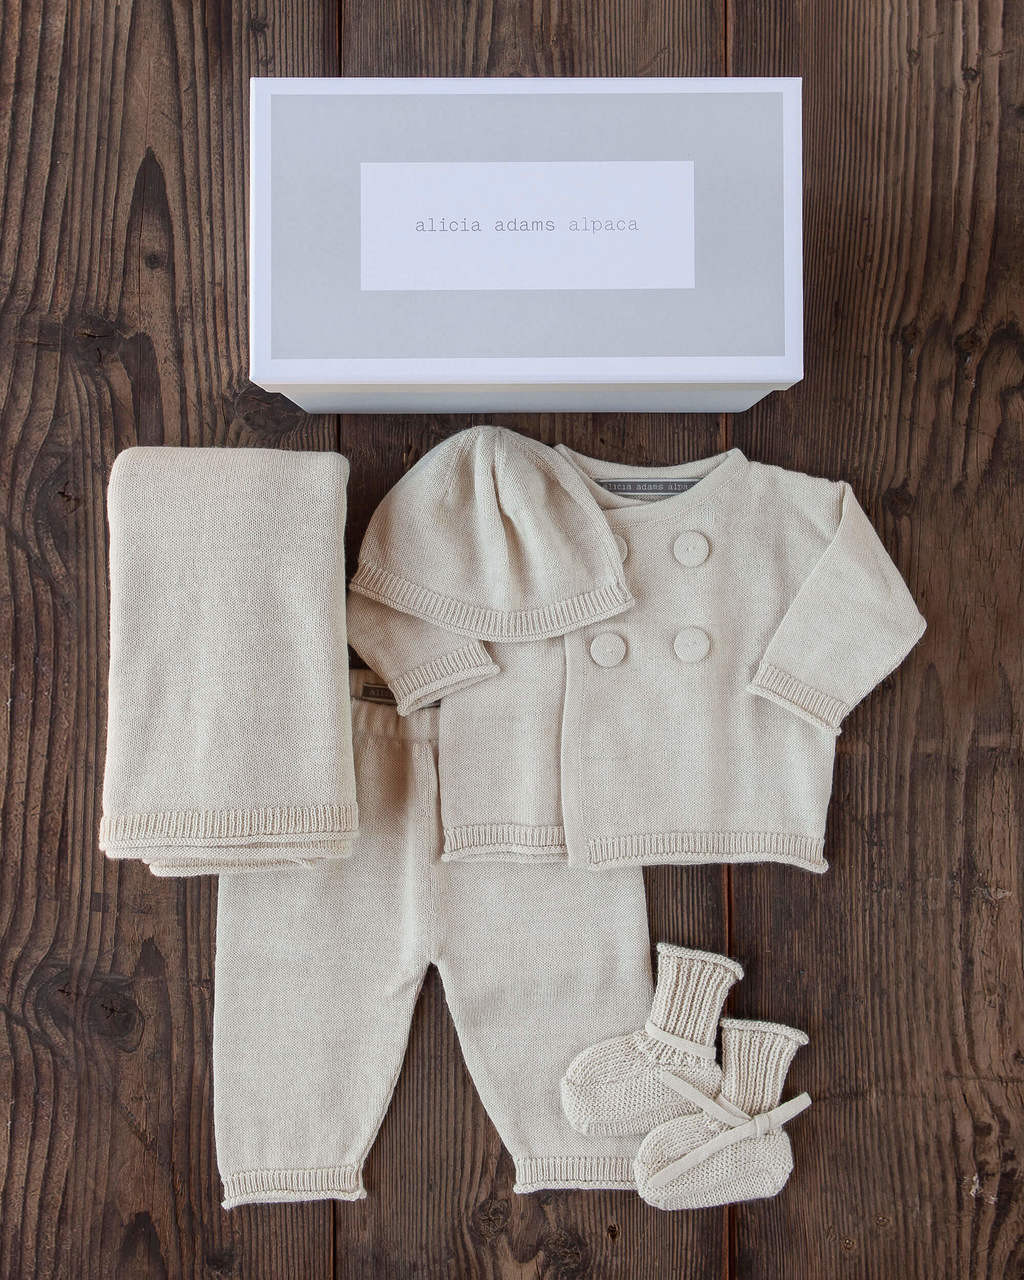 Alicia Adams Alpaca Cria Baby Set, alpaca gifts, alpaca baby clothes, alpaca hat, baby alpaca sweater, alpaca clothing, ivory alpaca baby clothing set